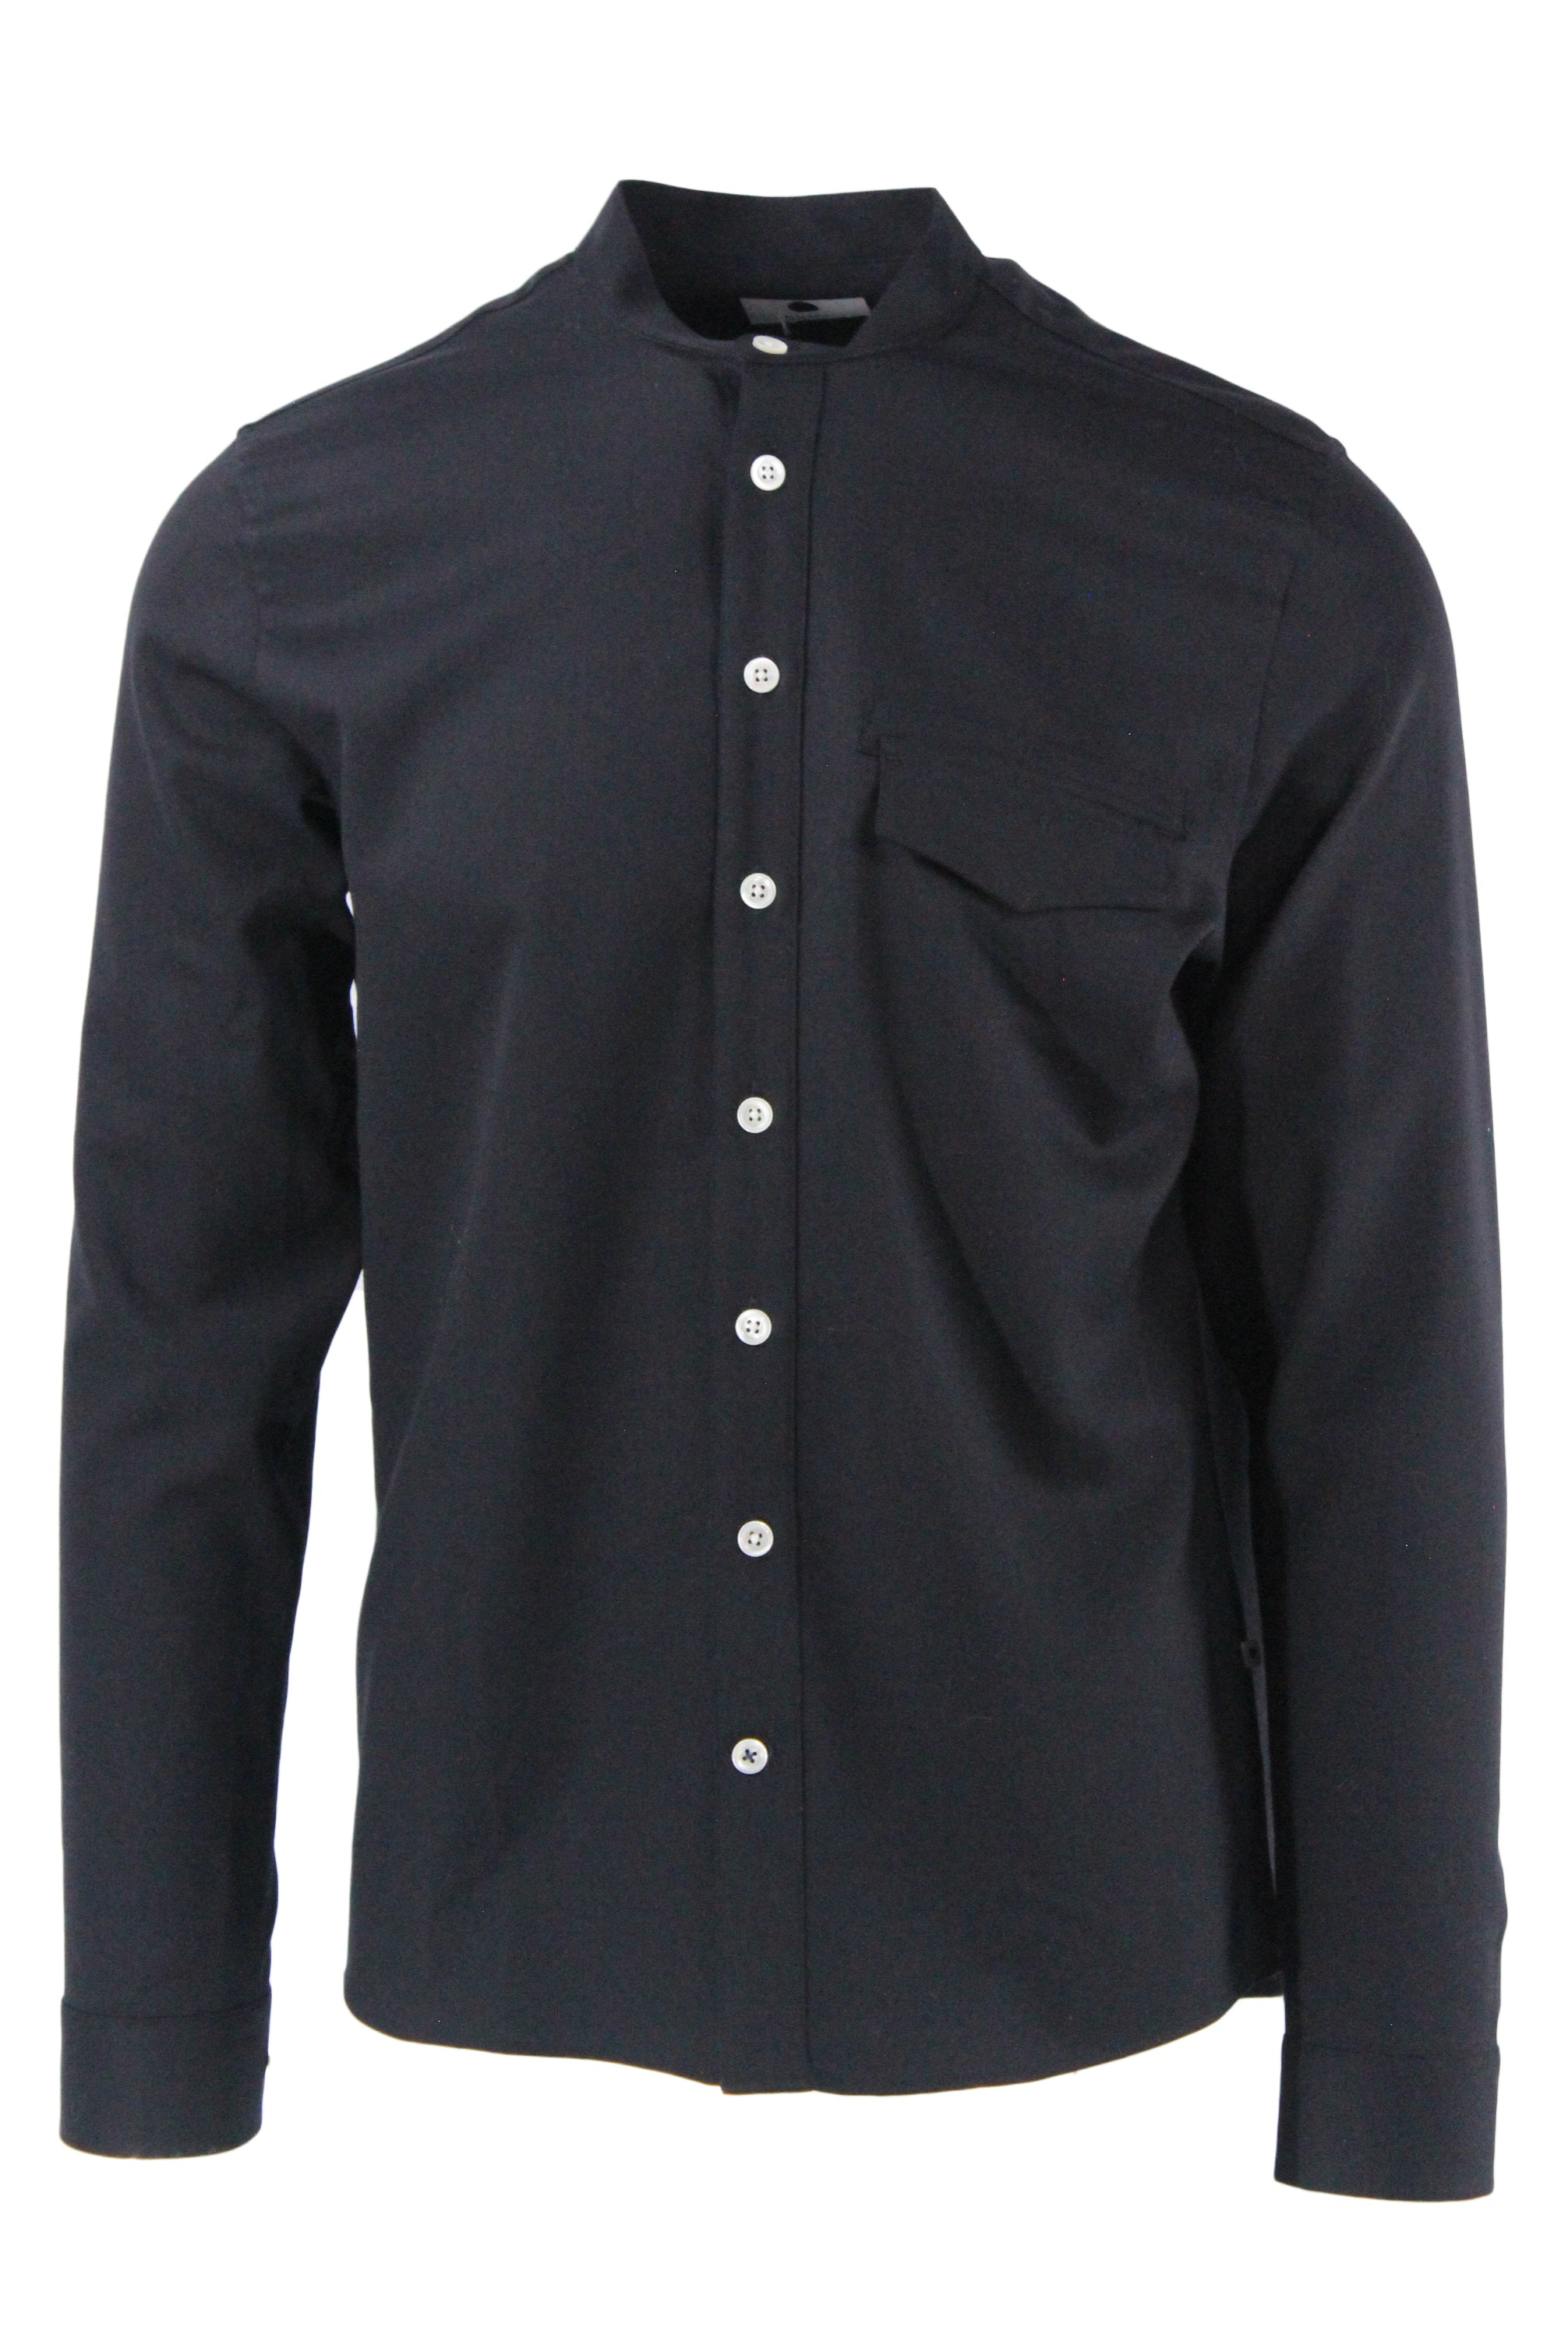 nn07 black long sleeve button up wool/poly shirt. features flap pockets at left breast, mandarin style collar with contrast white buttons.